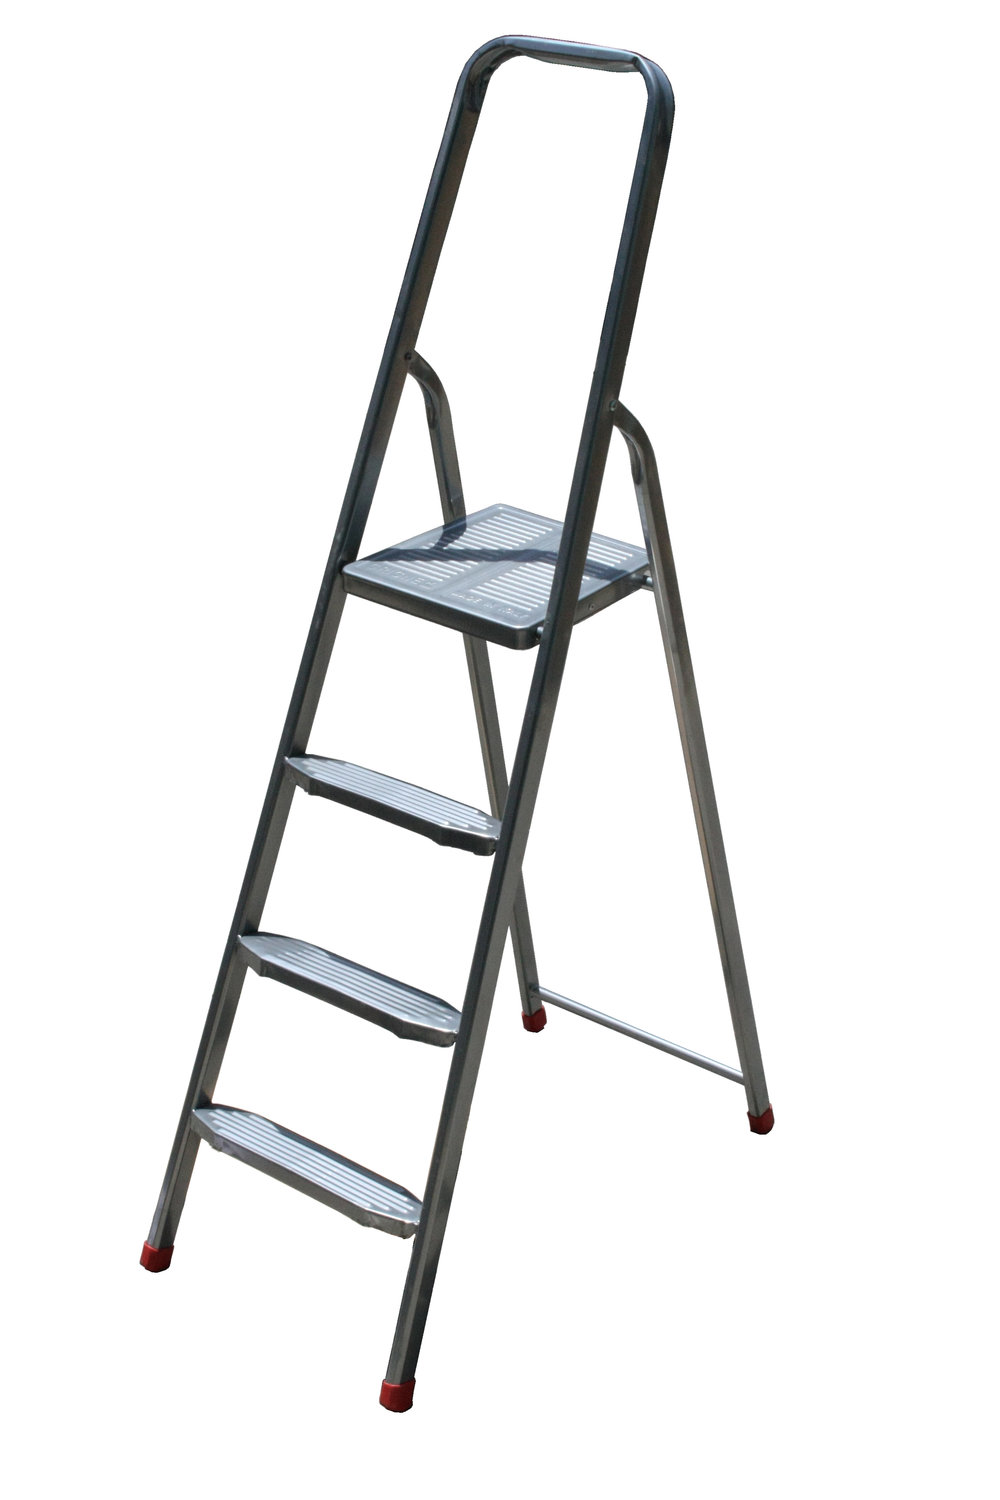 Steel ladder-4Steps.jpg